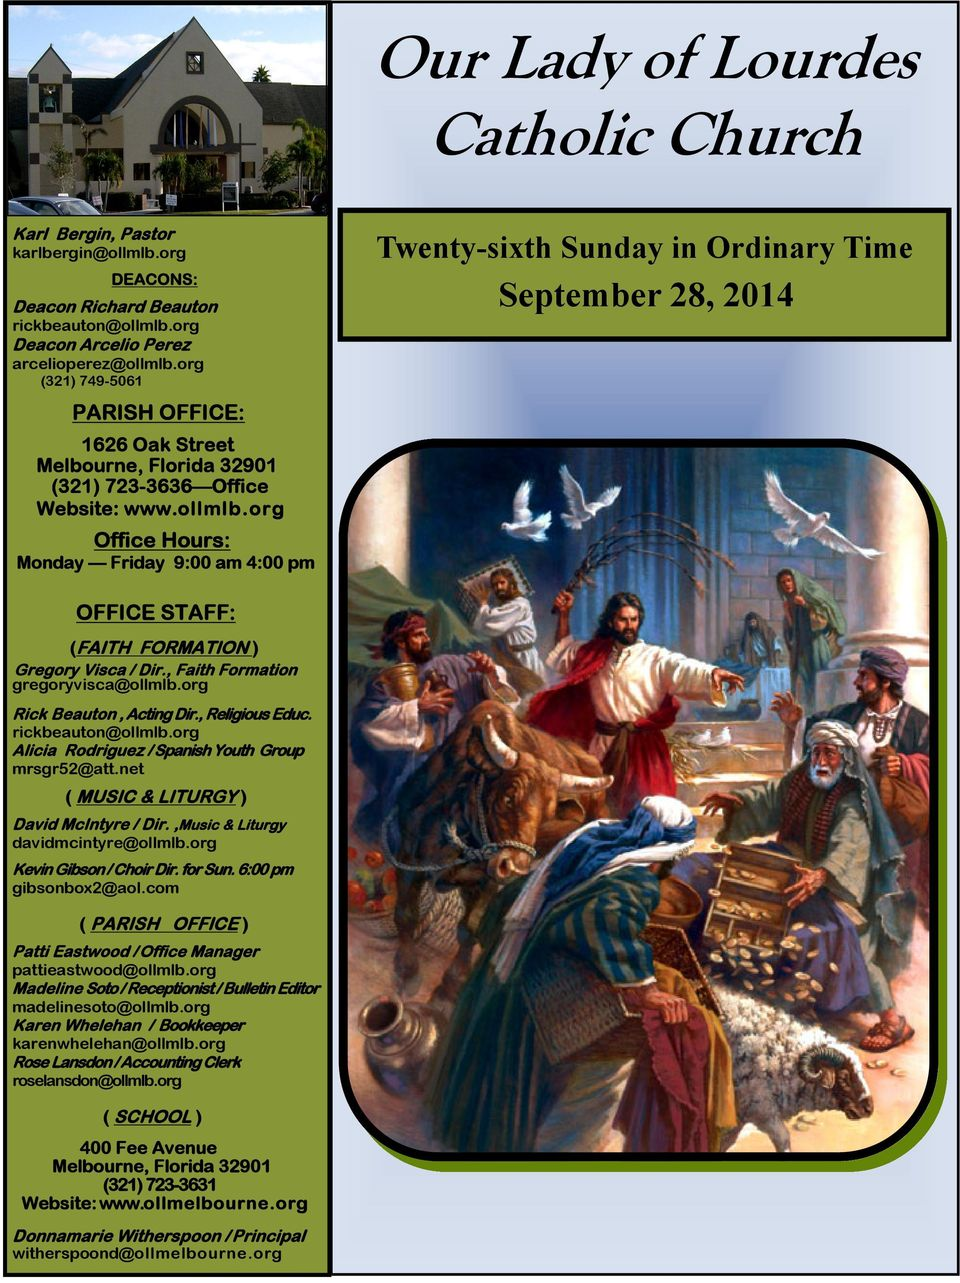 org Office Hours: Monday Friday 9:00 am 4:00 pm Twenty-sixth Sunday in Ordinary Time September 28, 2014 OFFICE STAFF: (FAITH FORMATION ) Gregory Visca / Dir., Faith Formation gregoryvisca@ollmlb.